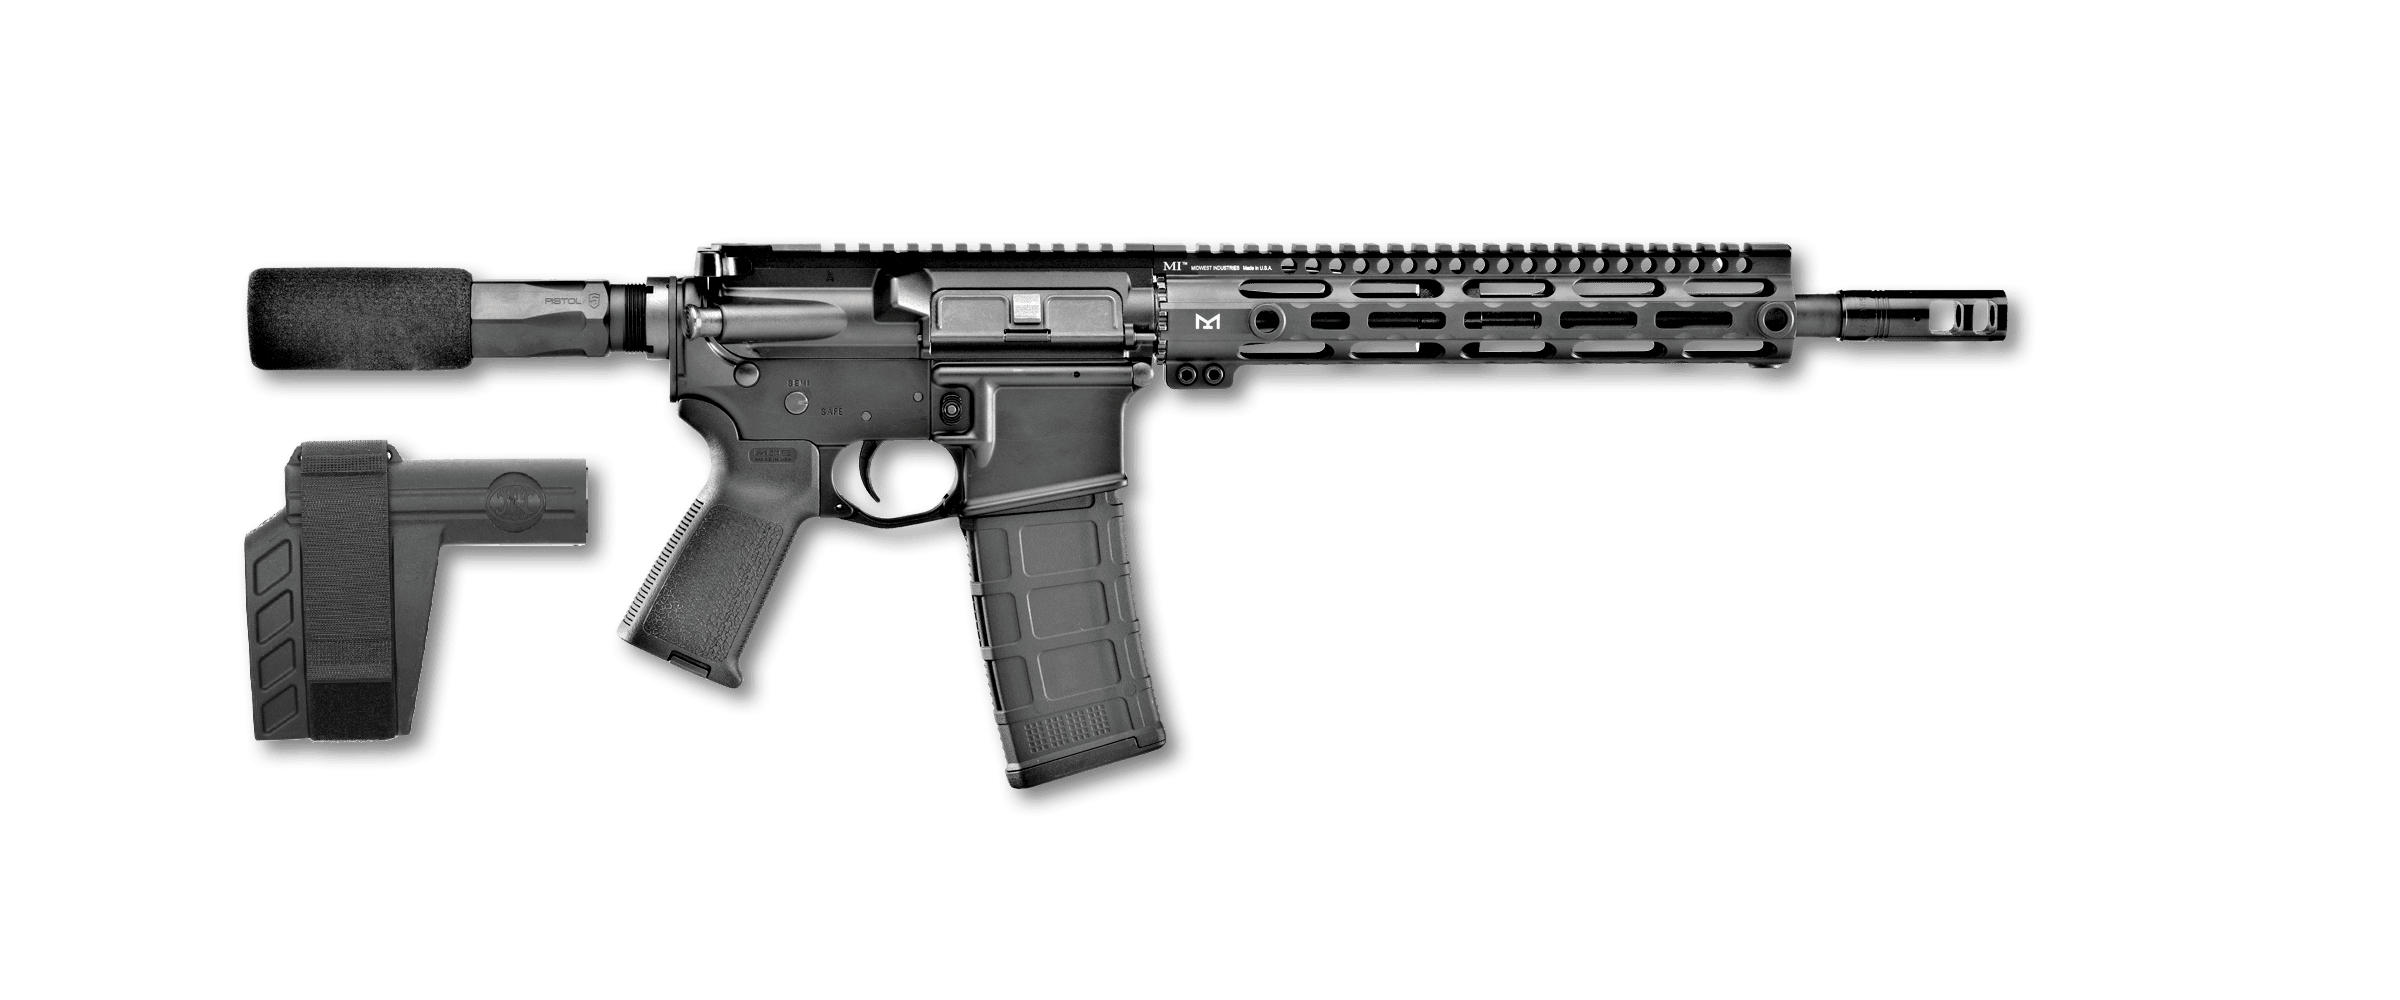 FN 15 pistol right profile black